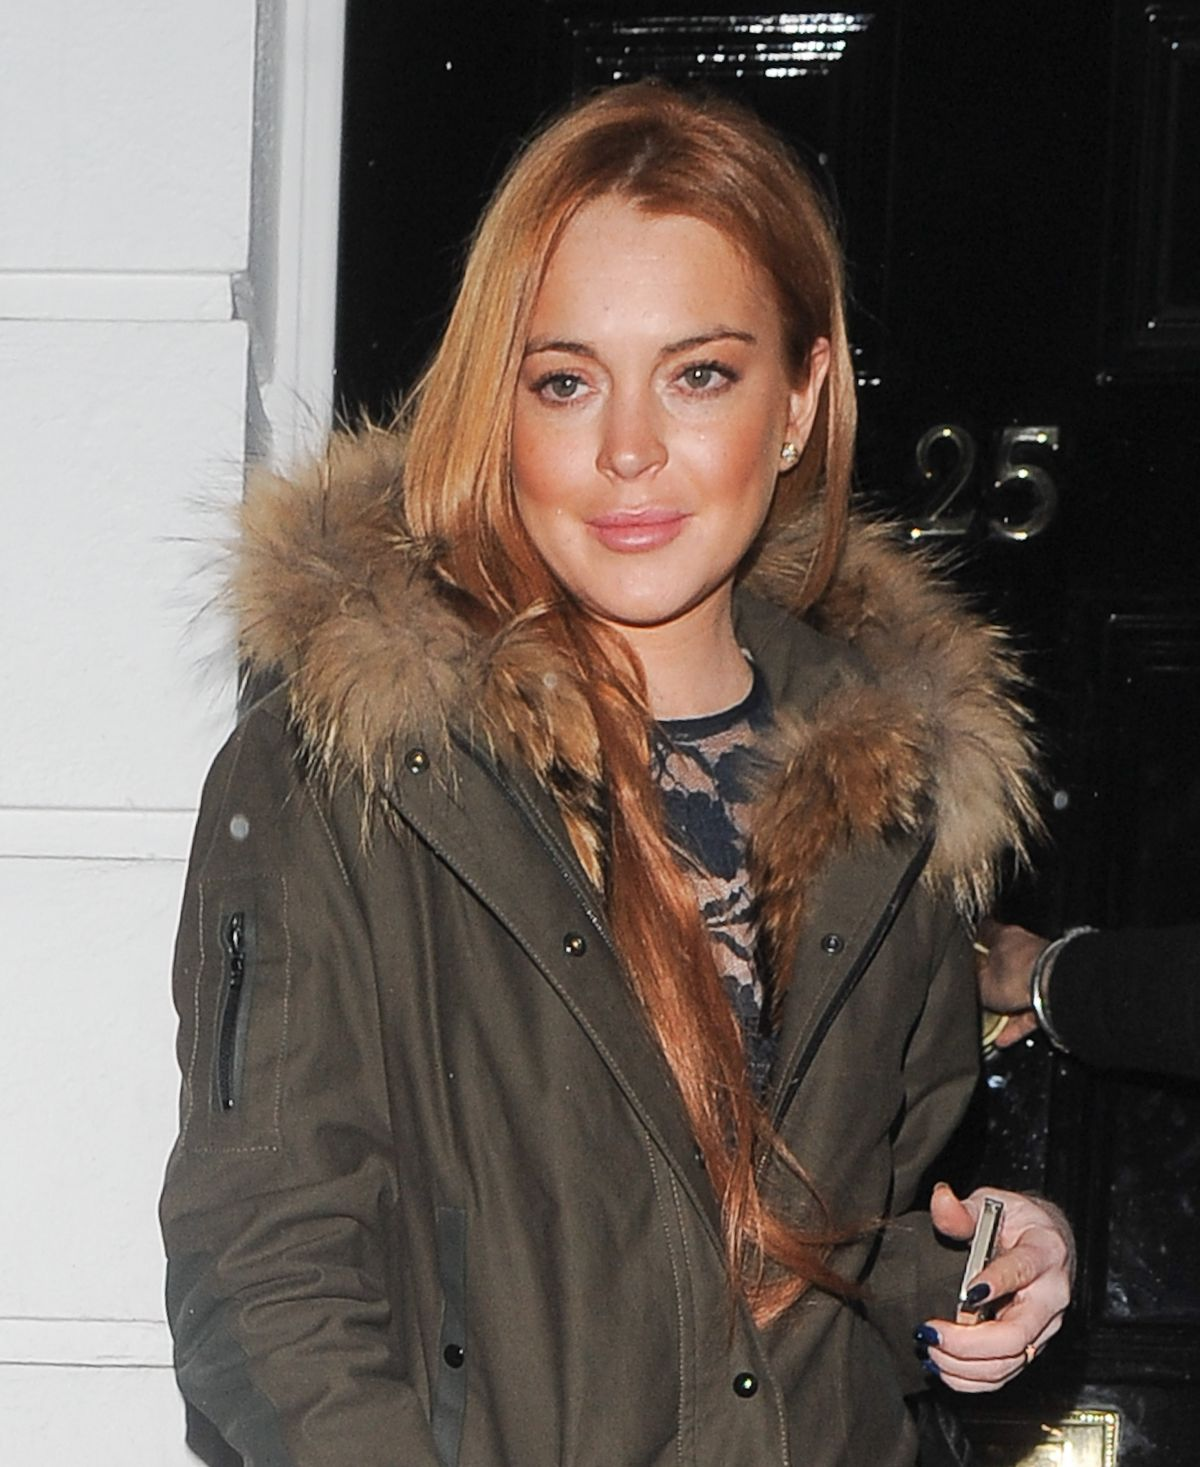 Lindsay Lohan Out & About In London